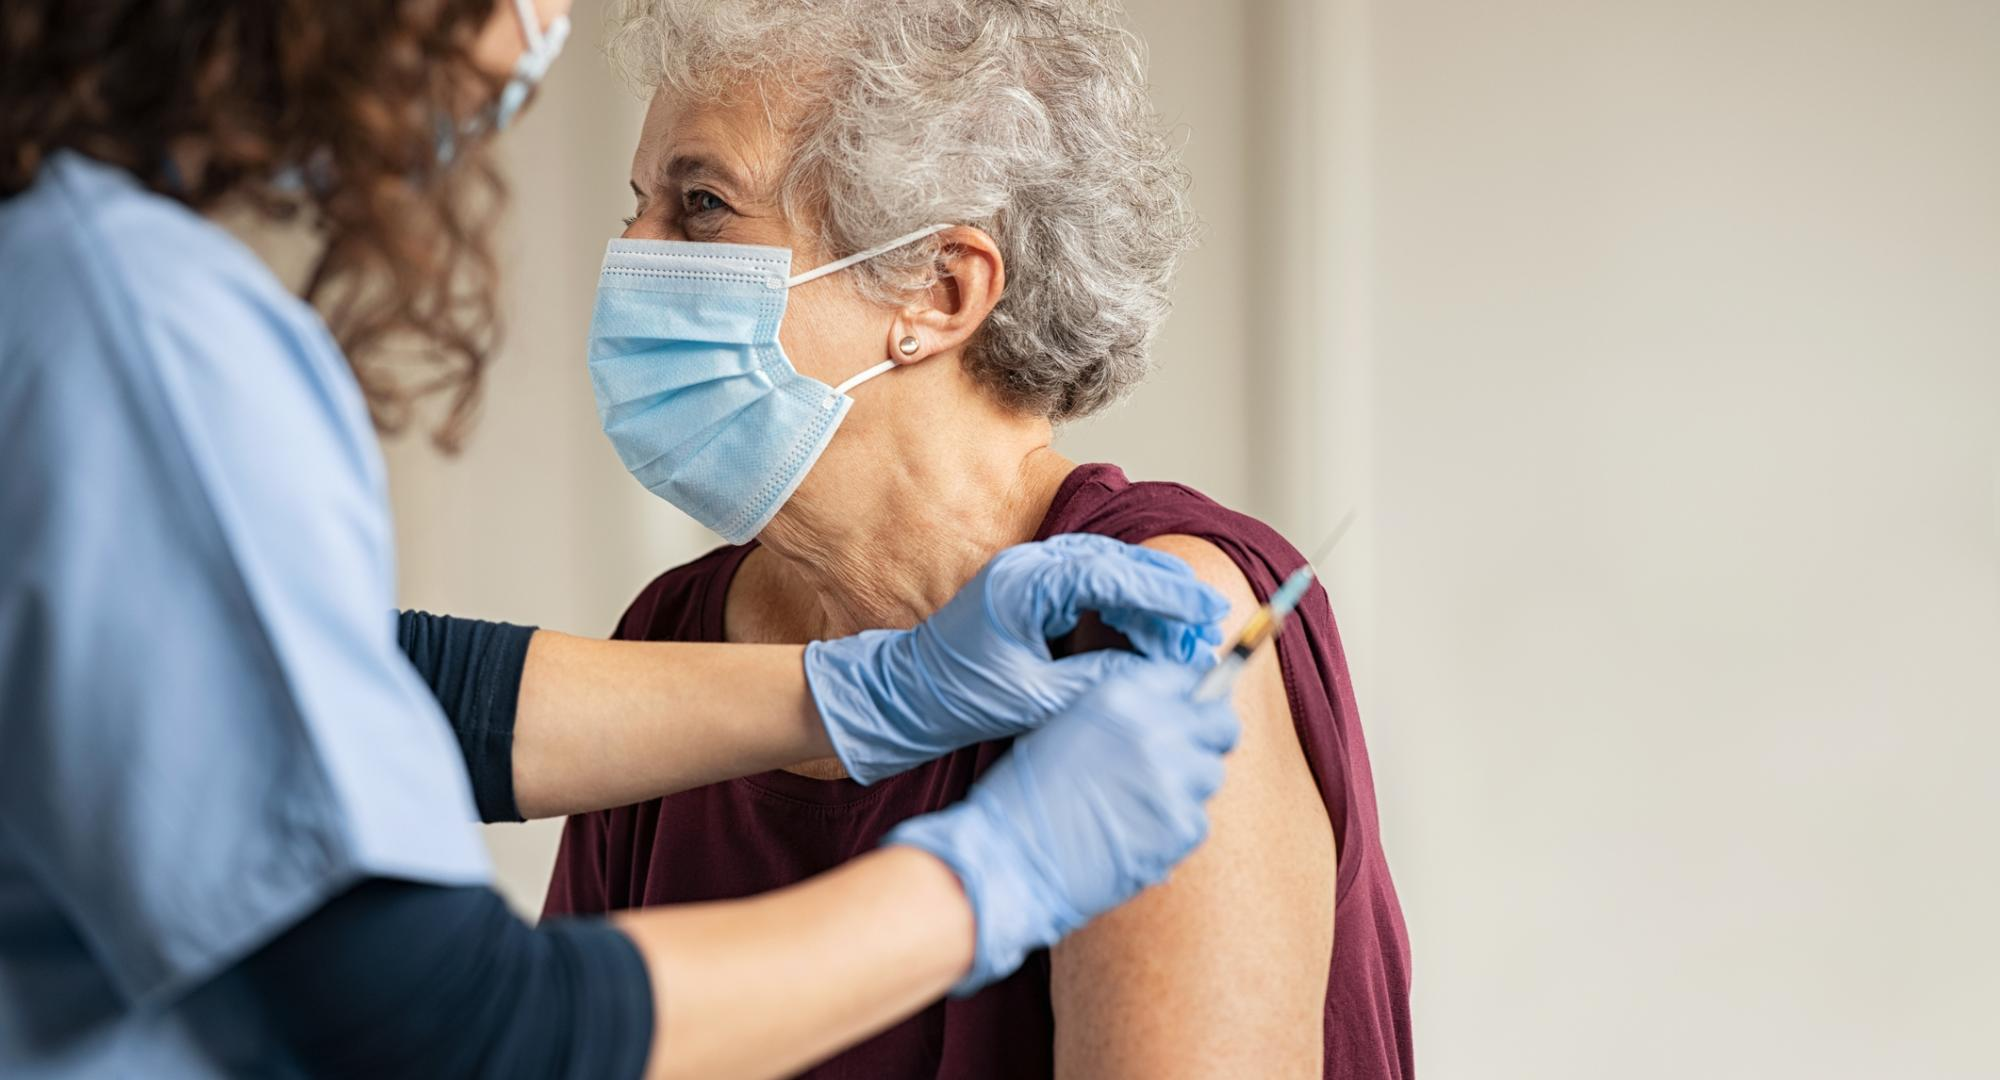 Elderly woman receiving a vaccine jab from a nurse